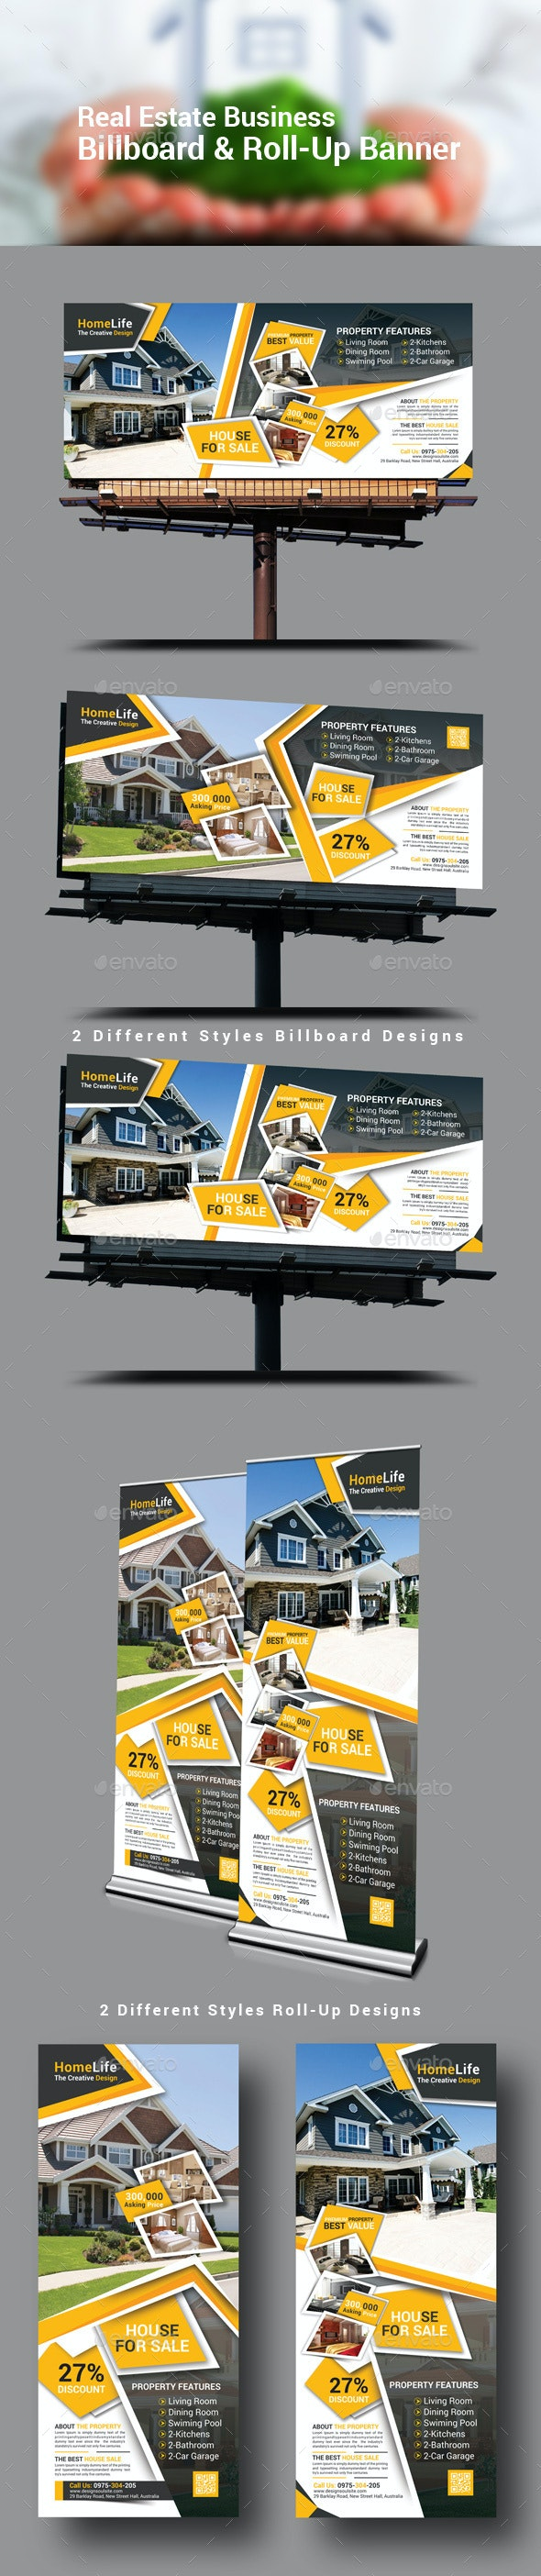 Real Estate Business Billboard & Roll-Up Banner - Signage Print Templates